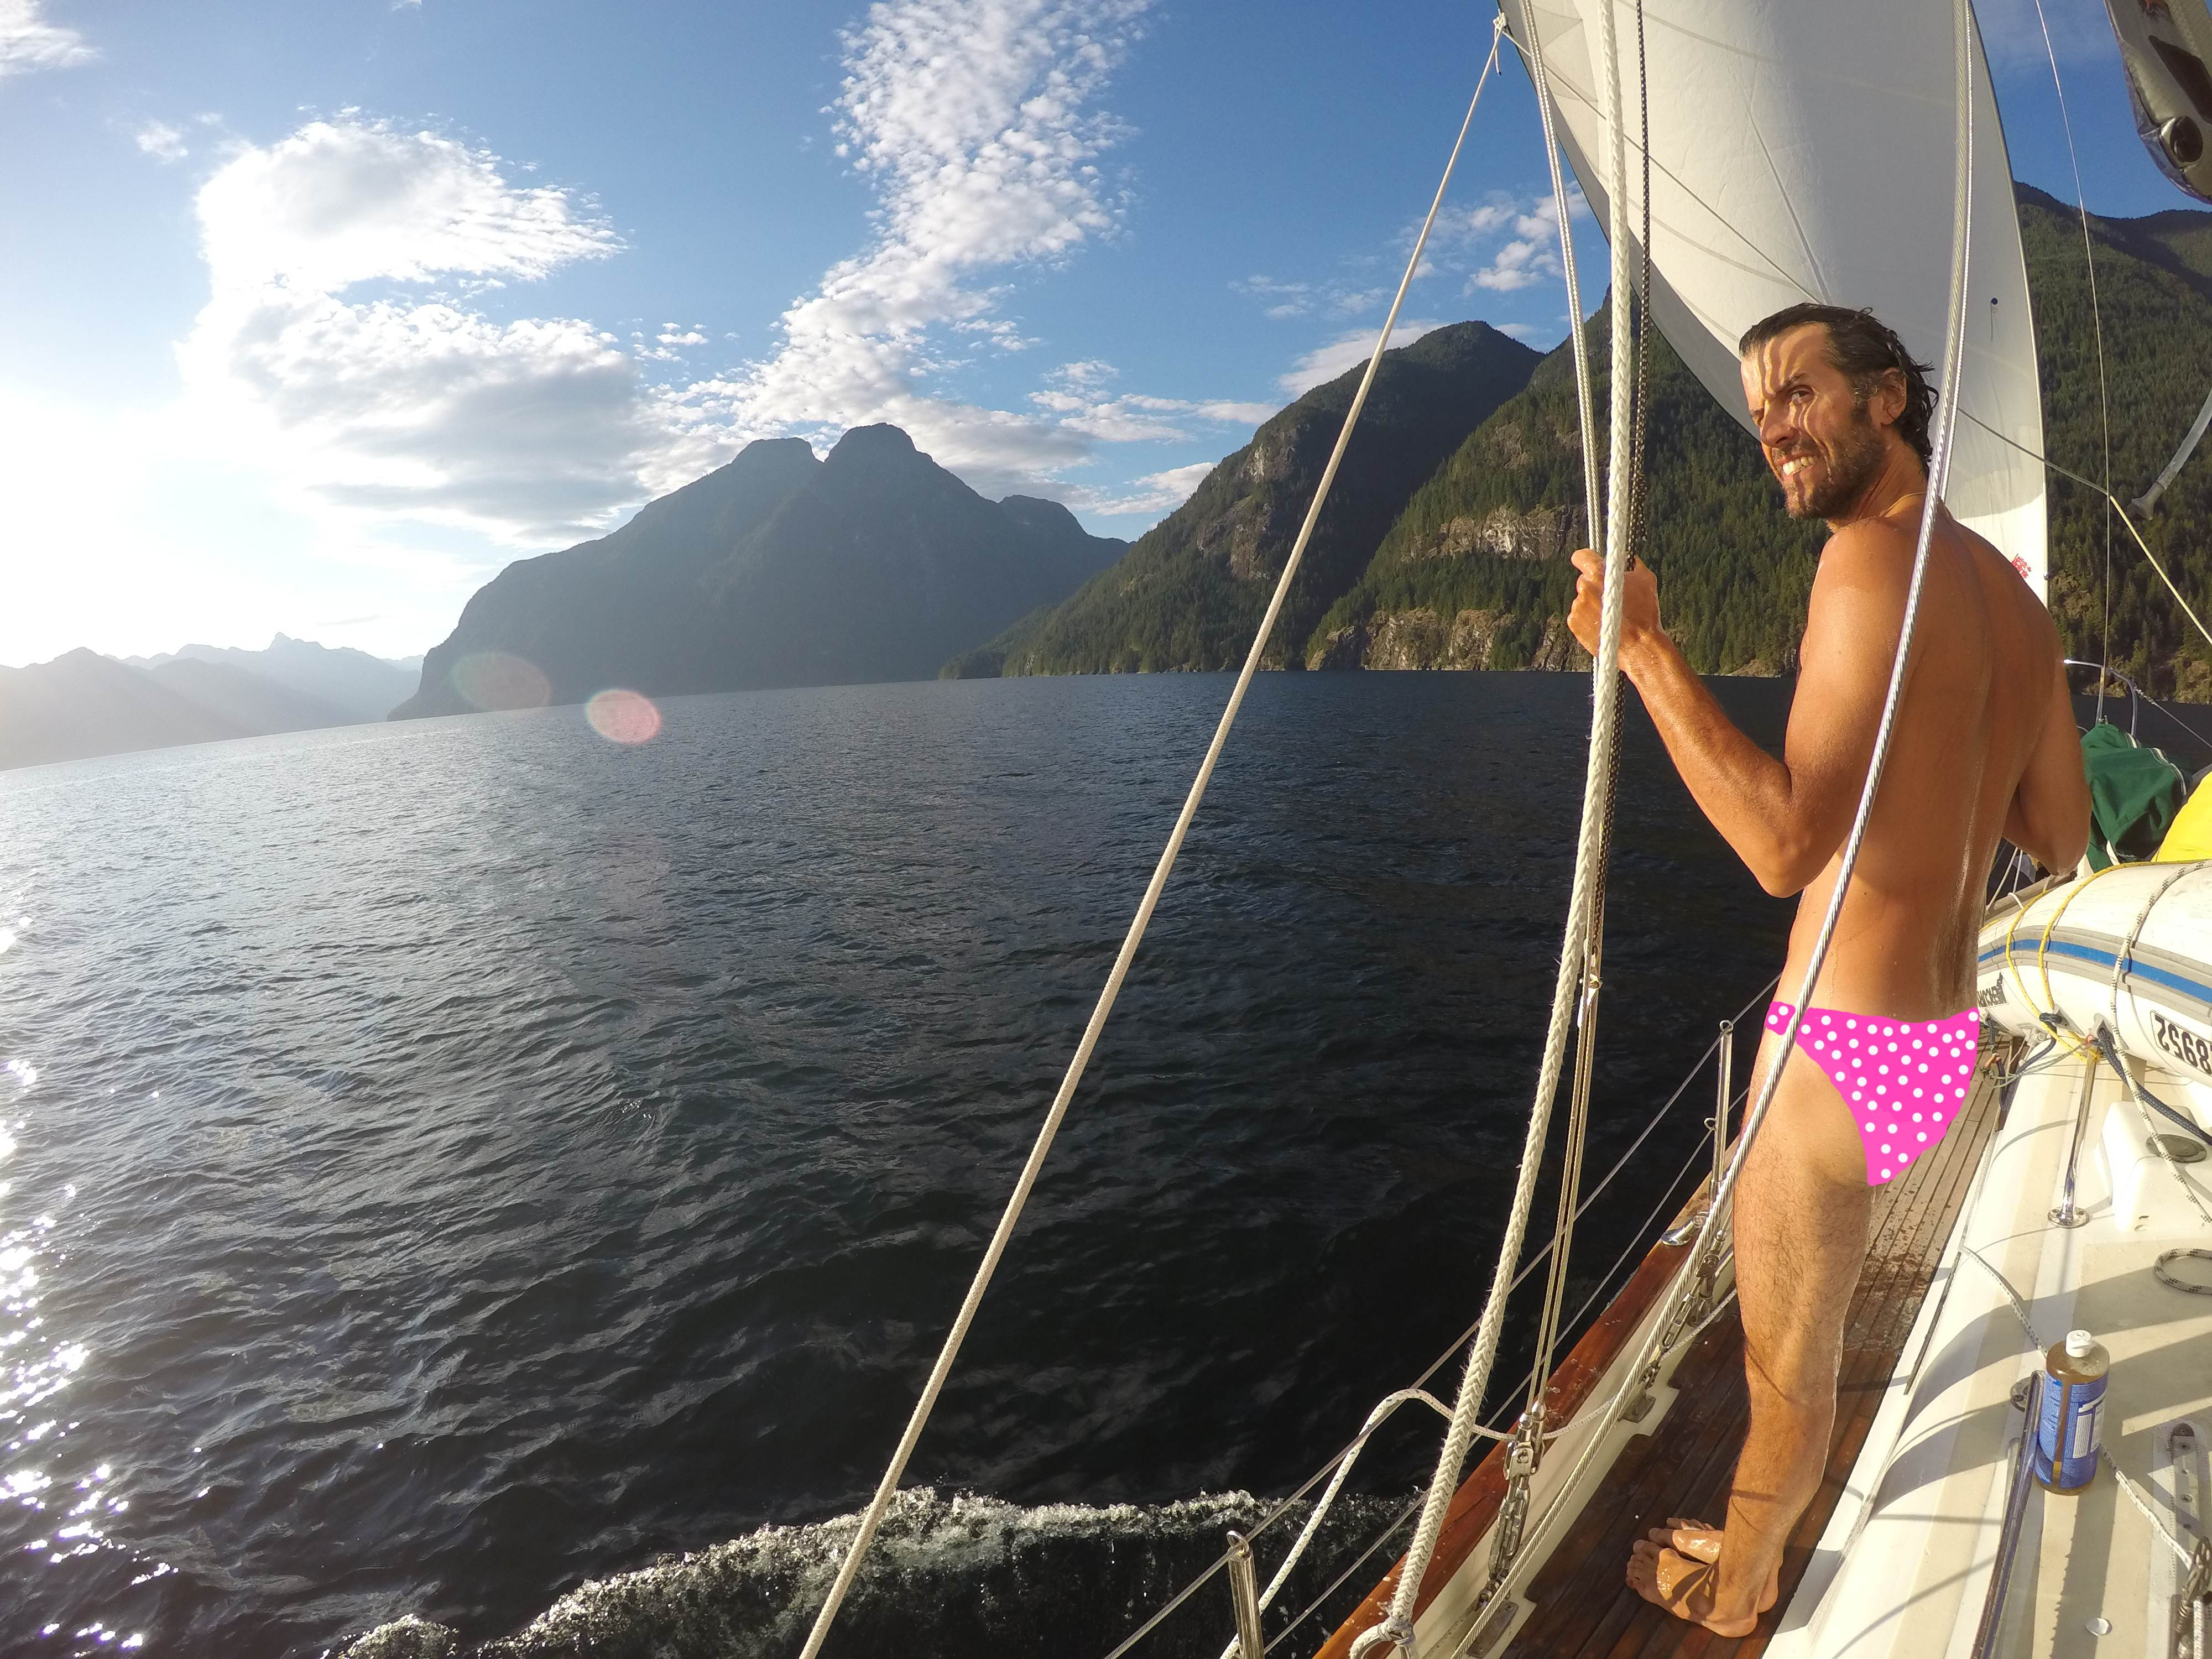 Saxony drew on the pink bikini bottom with white pol-a-dots. Isn't she nice? Seriously though, nicest outdoor shower location of my life. Under sail in Jervis Inlet